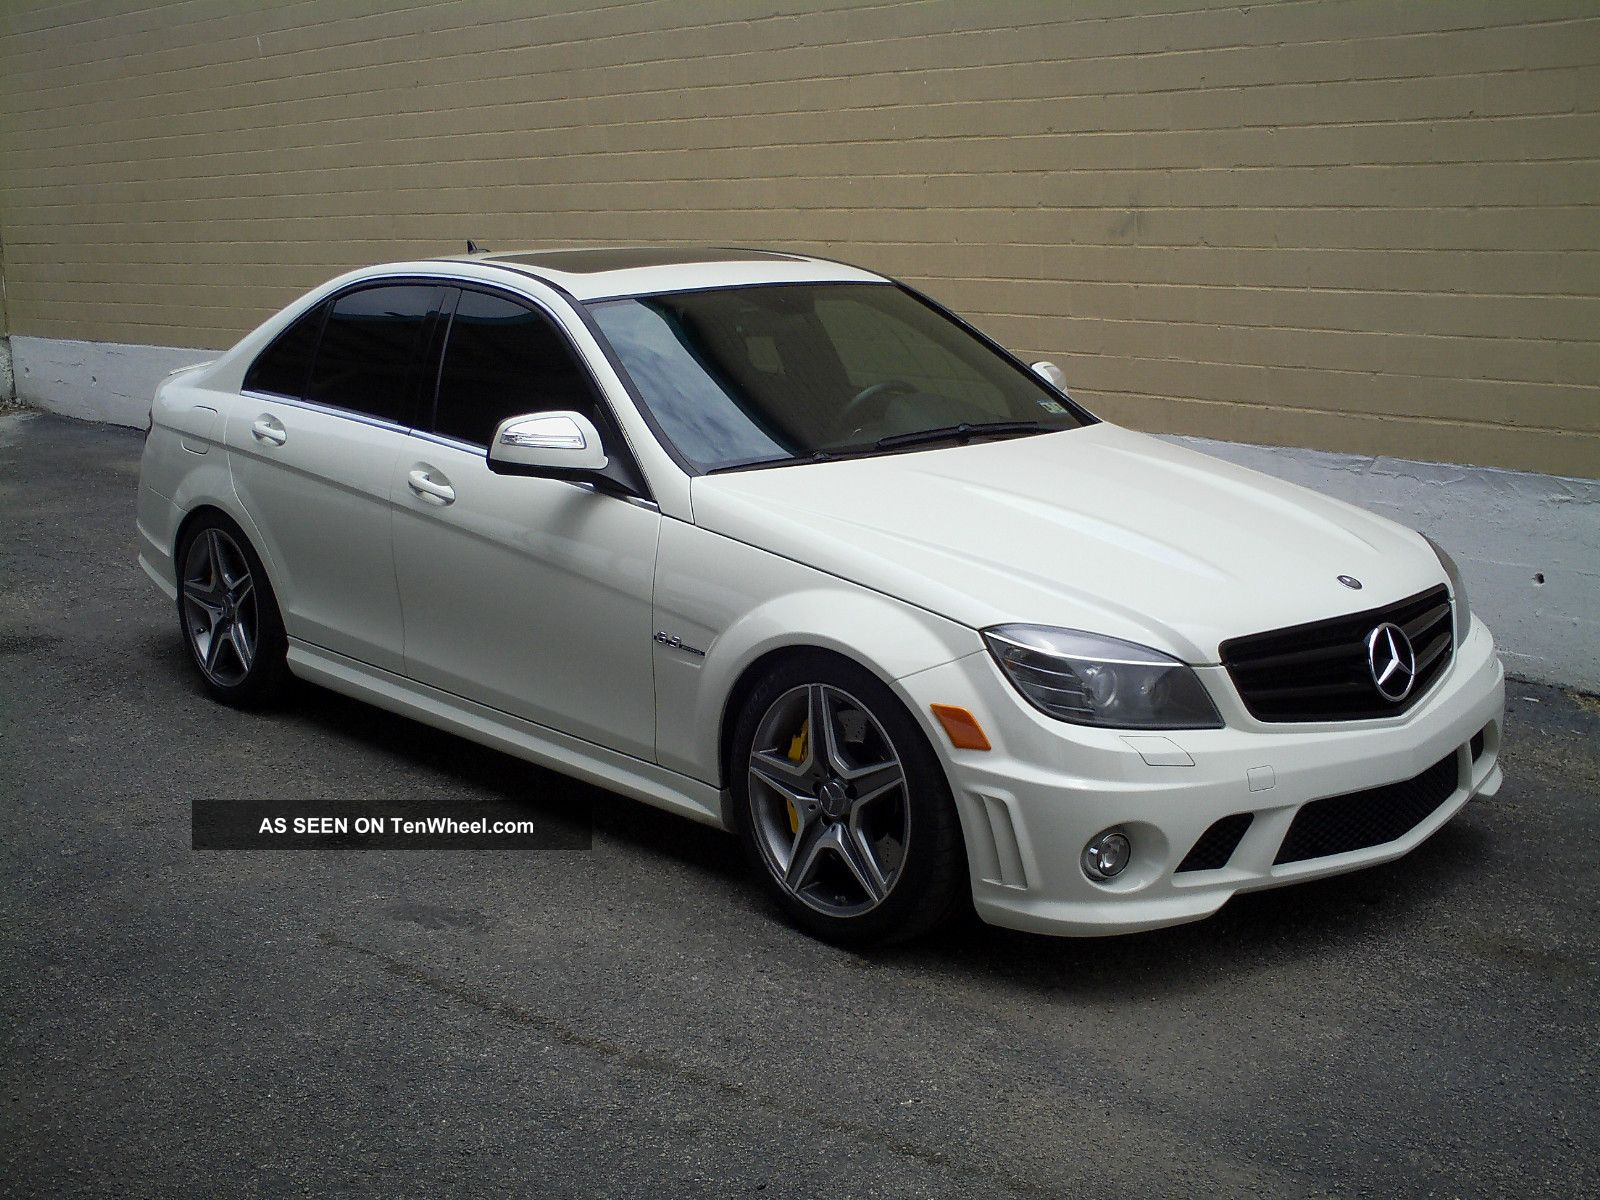 2009 mercedes benz c63 amg base sedan 4 door 6 3l for Mercedes benz c63 amg sedan